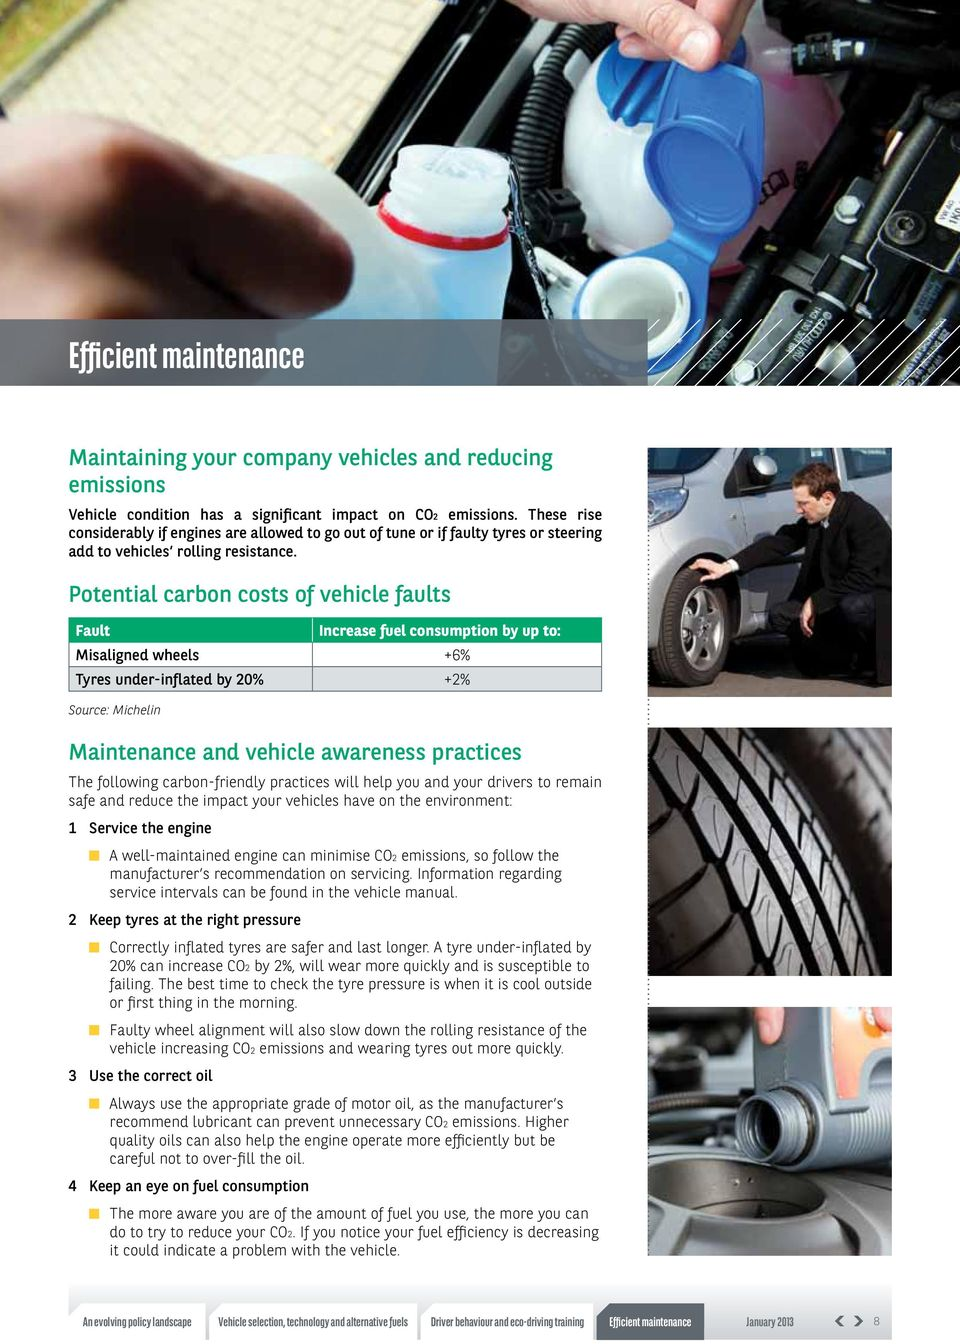 Potential carbon costs of vehicle faults Fault Increase fuel consumption by up to: Misaligned wheels +6% Tyres under-inflated by 20% +2% Source: Michelin Maintenance and vehicle awareness practices